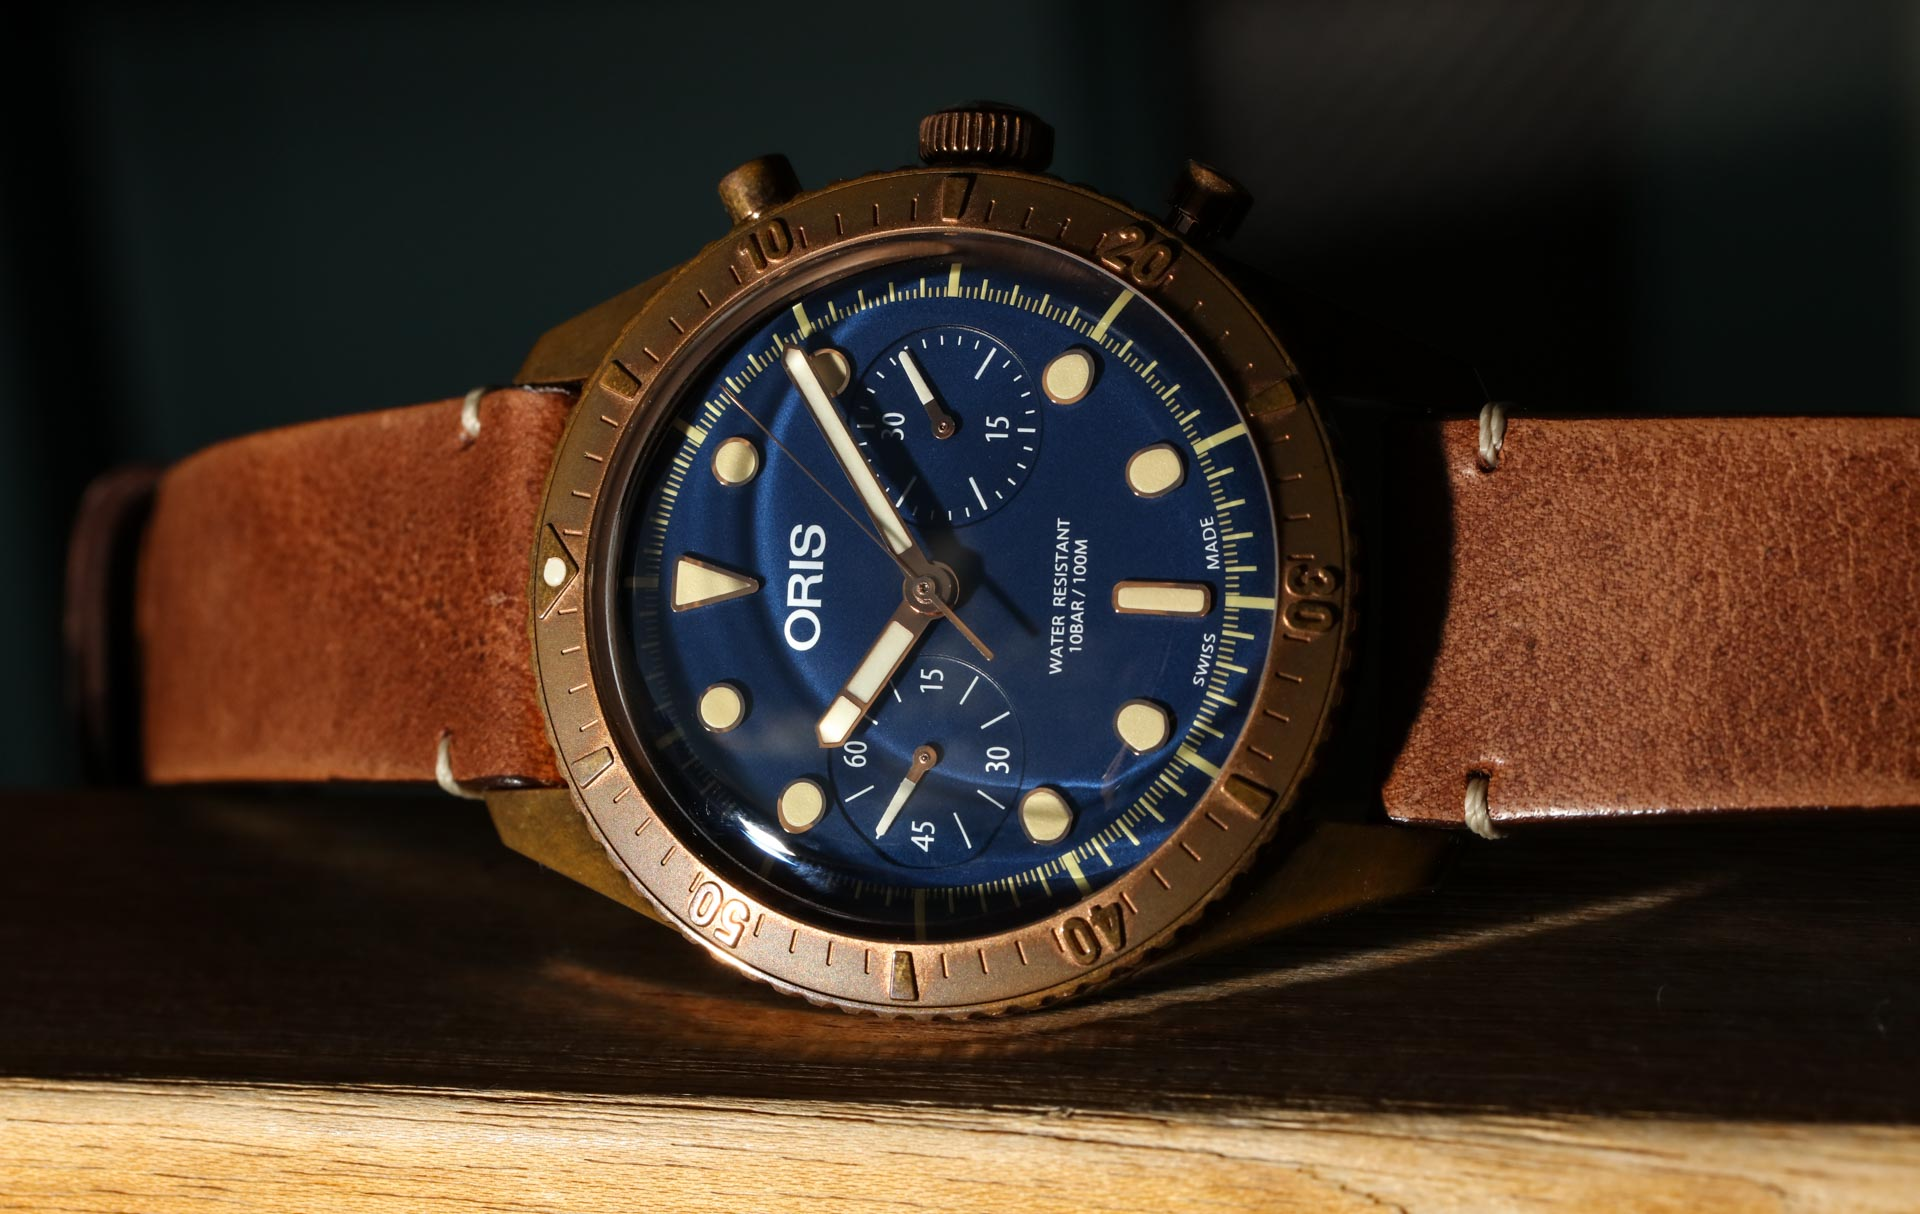 Oris Carl Brashear Chronograph-Limited Edition Bronze